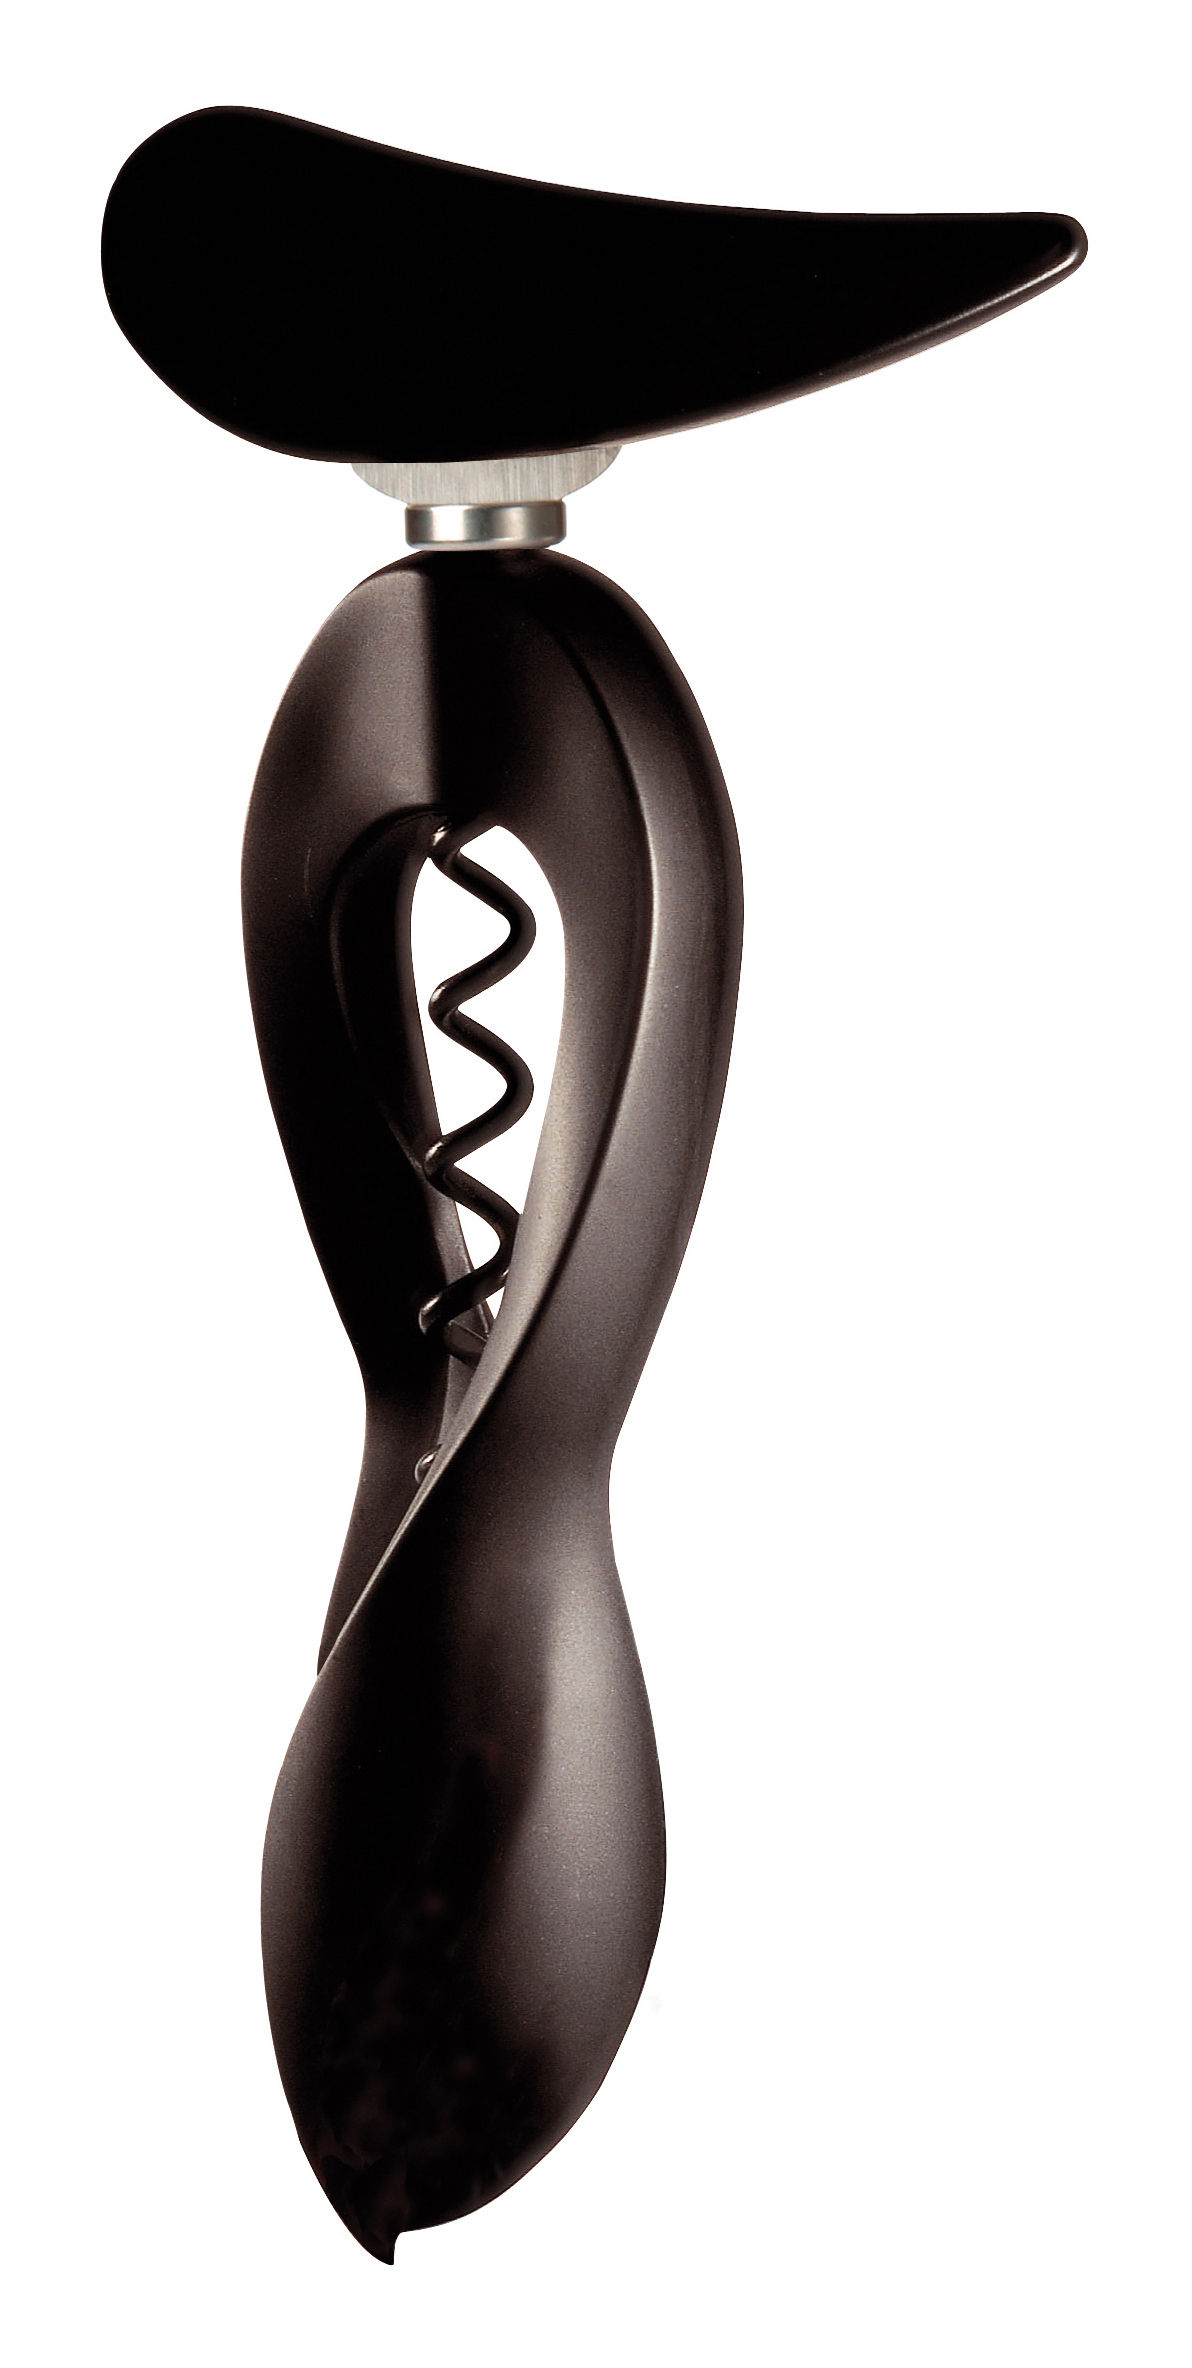 chic lady night bottle opener corkscrew black by l 39 atelier du vin. Black Bedroom Furniture Sets. Home Design Ideas